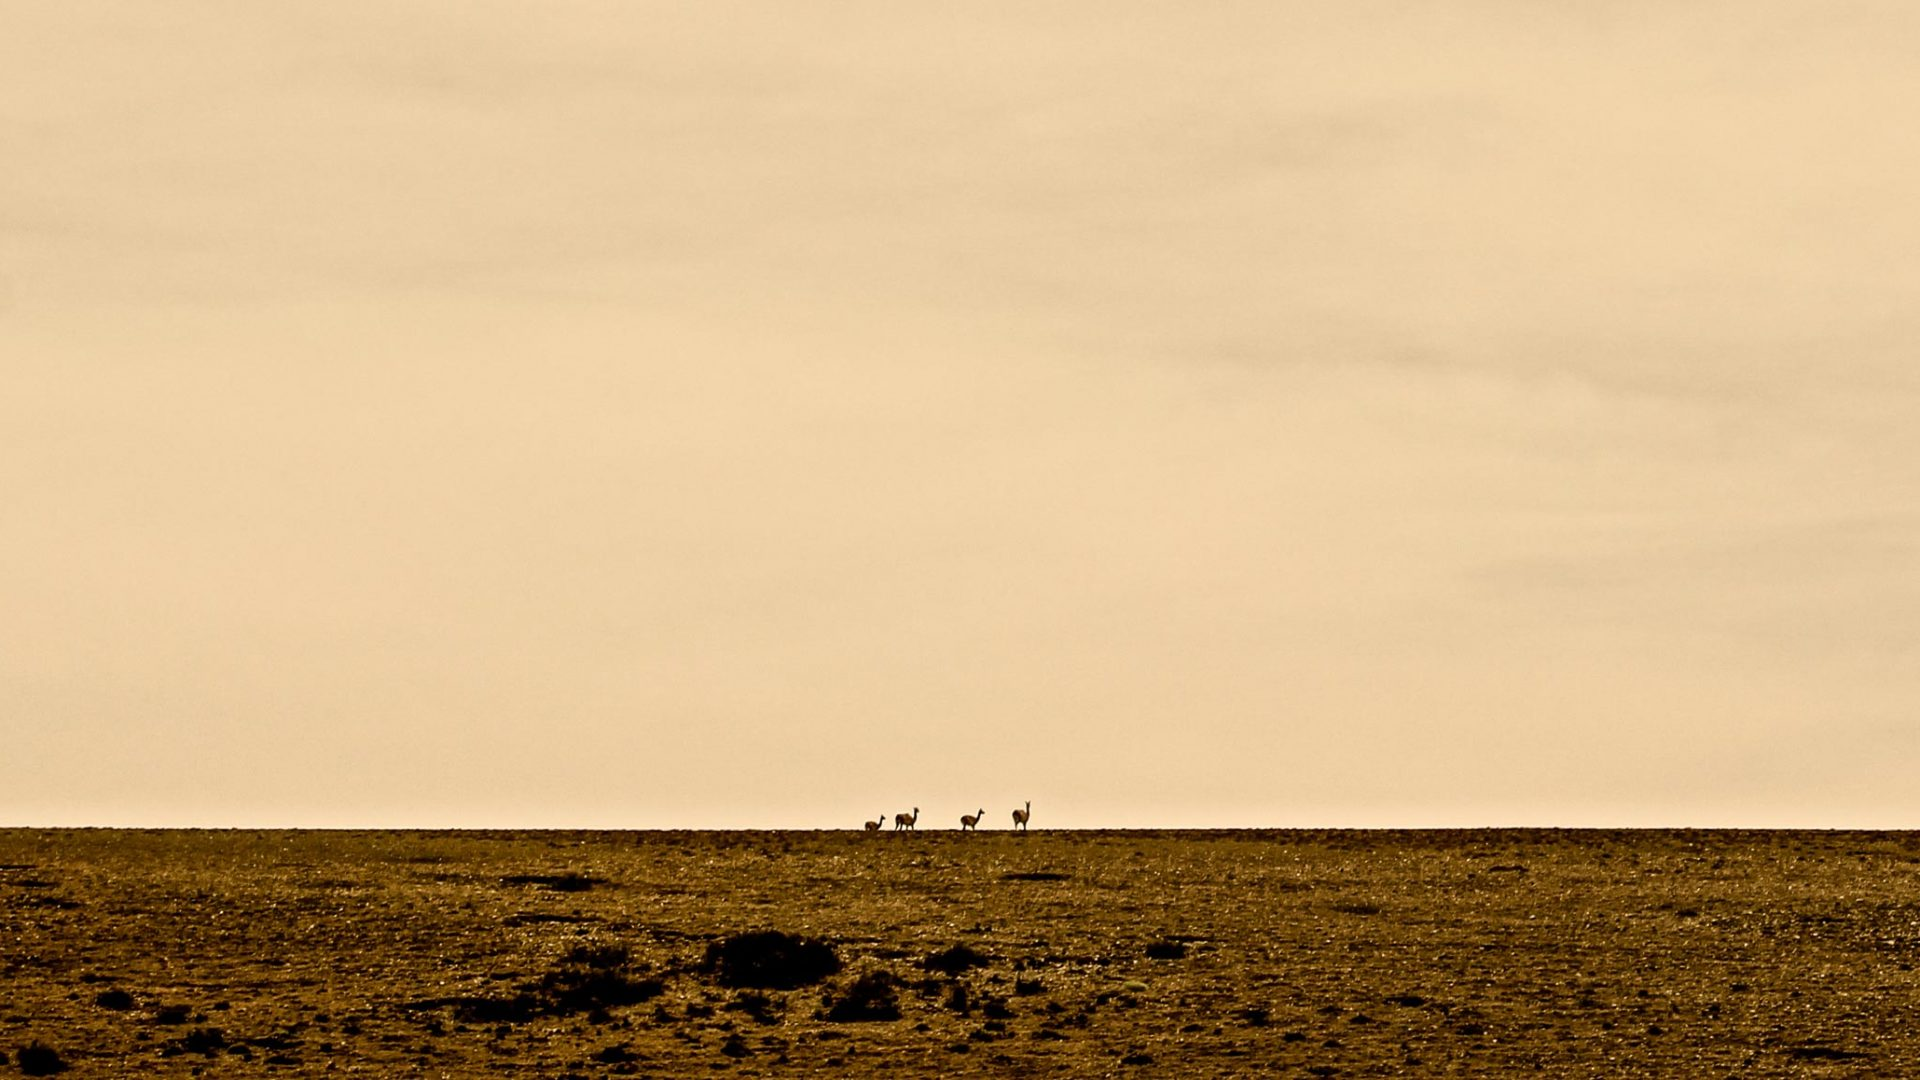 Guanacos in the distance,, shrouded in the warmth of the setting sun.